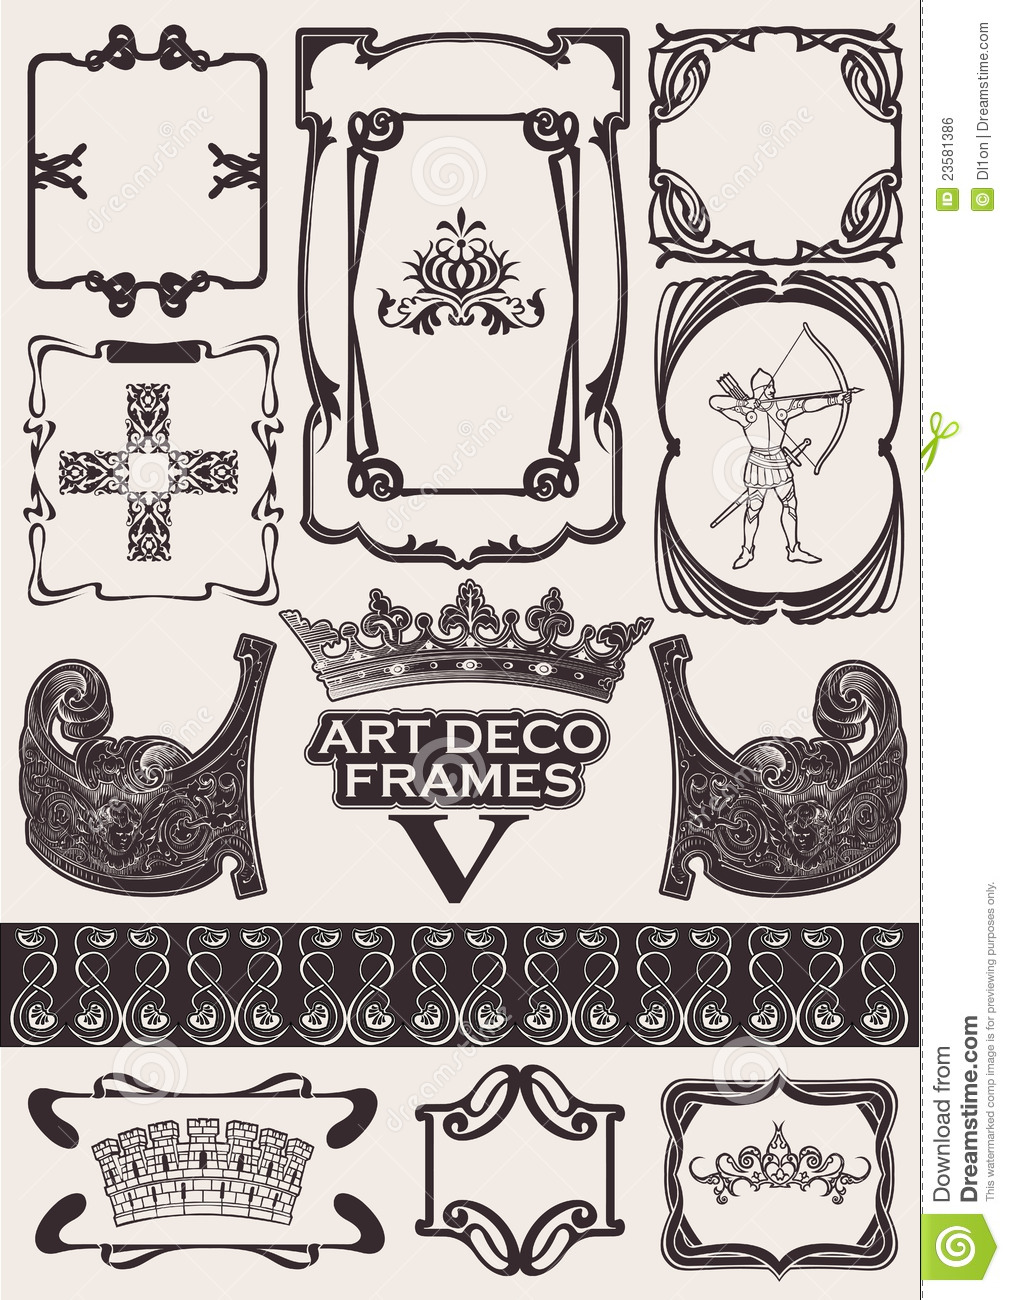 Set of ancient frames in art deco style royalty free stock for Art deco look